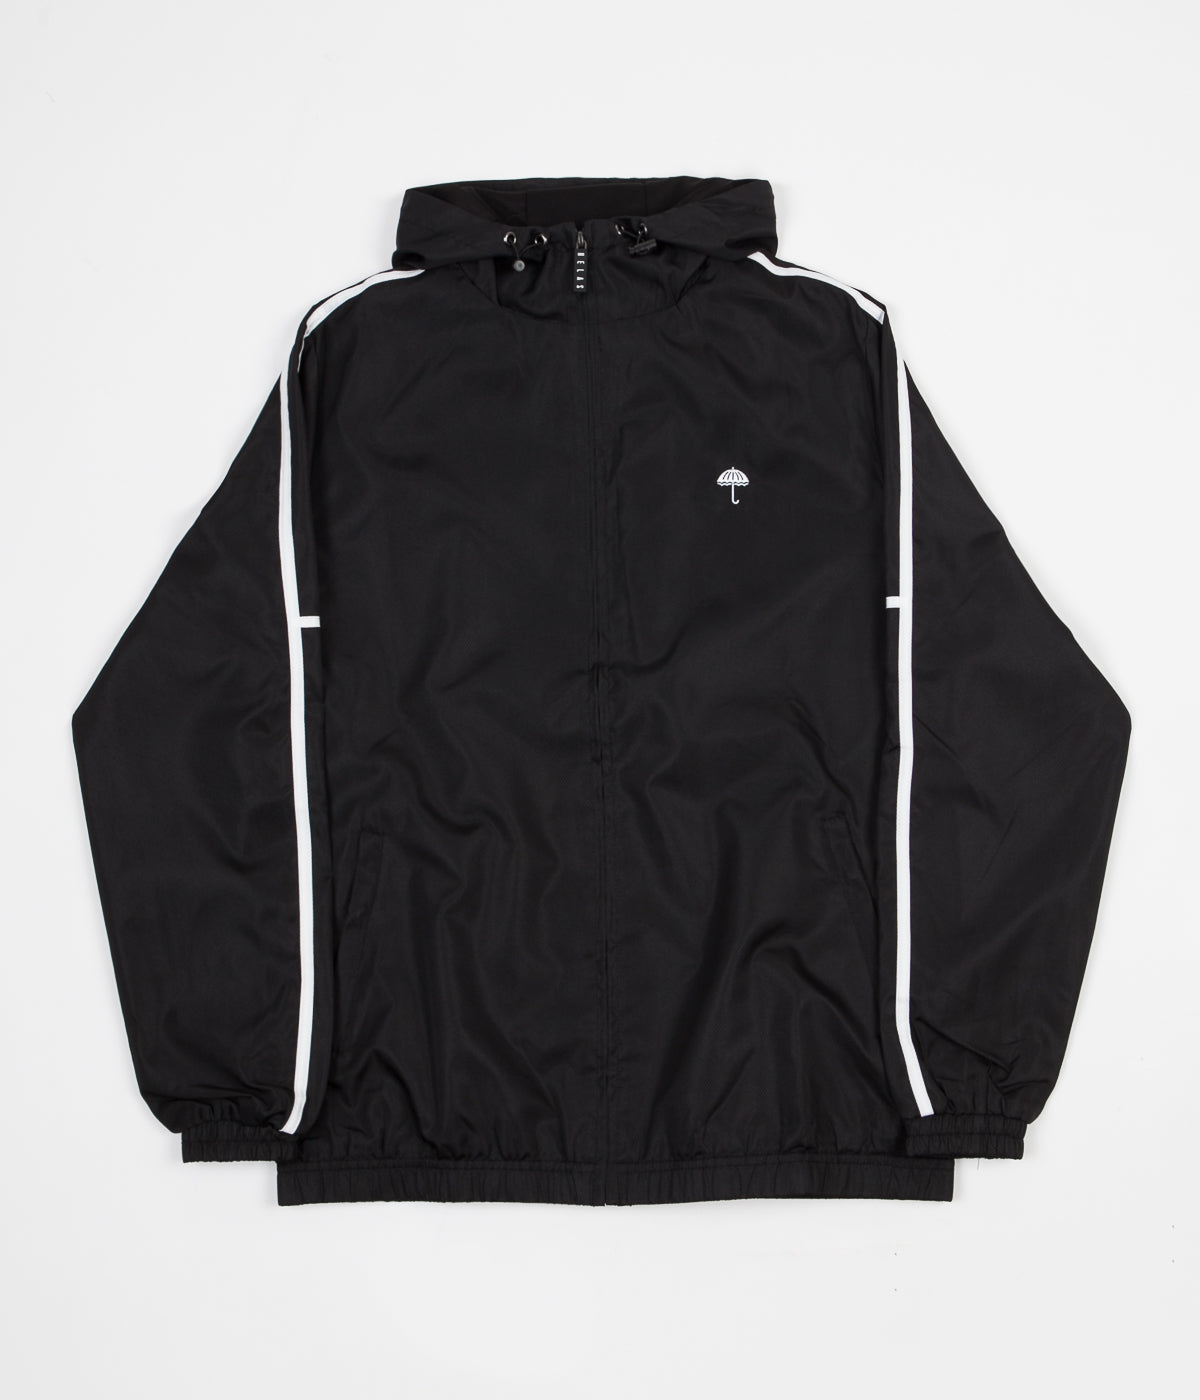 Helas Classic H Stripes Tracksuit Jacket - Black